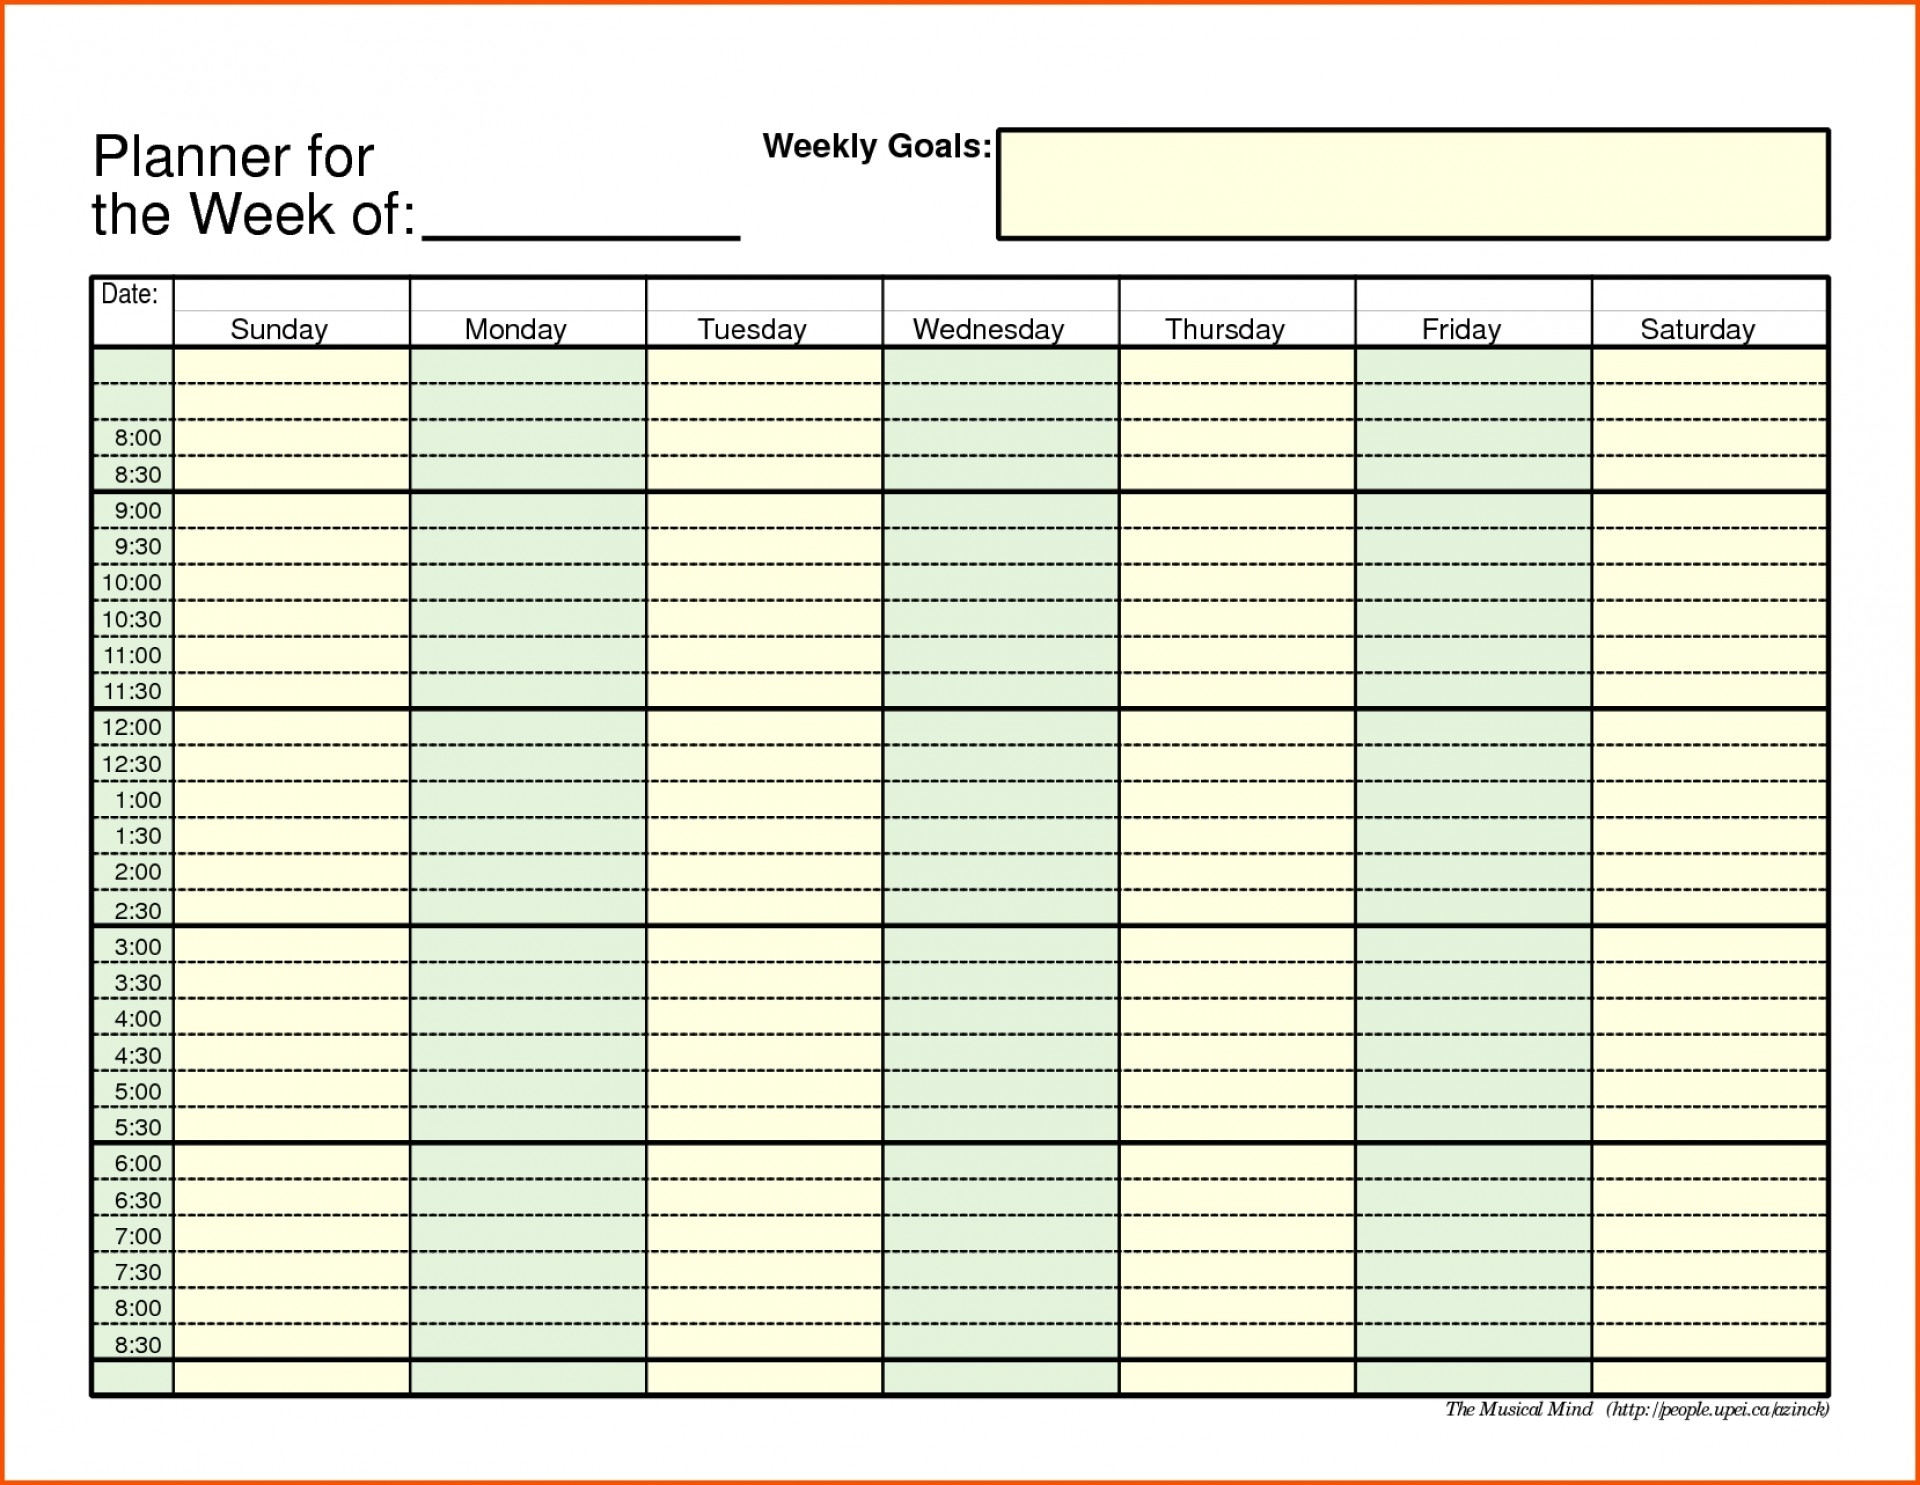 Printable Daily Schedule With Time Slots Blank Weekly Times Editable with regard to Daily Schedule With Time Slots